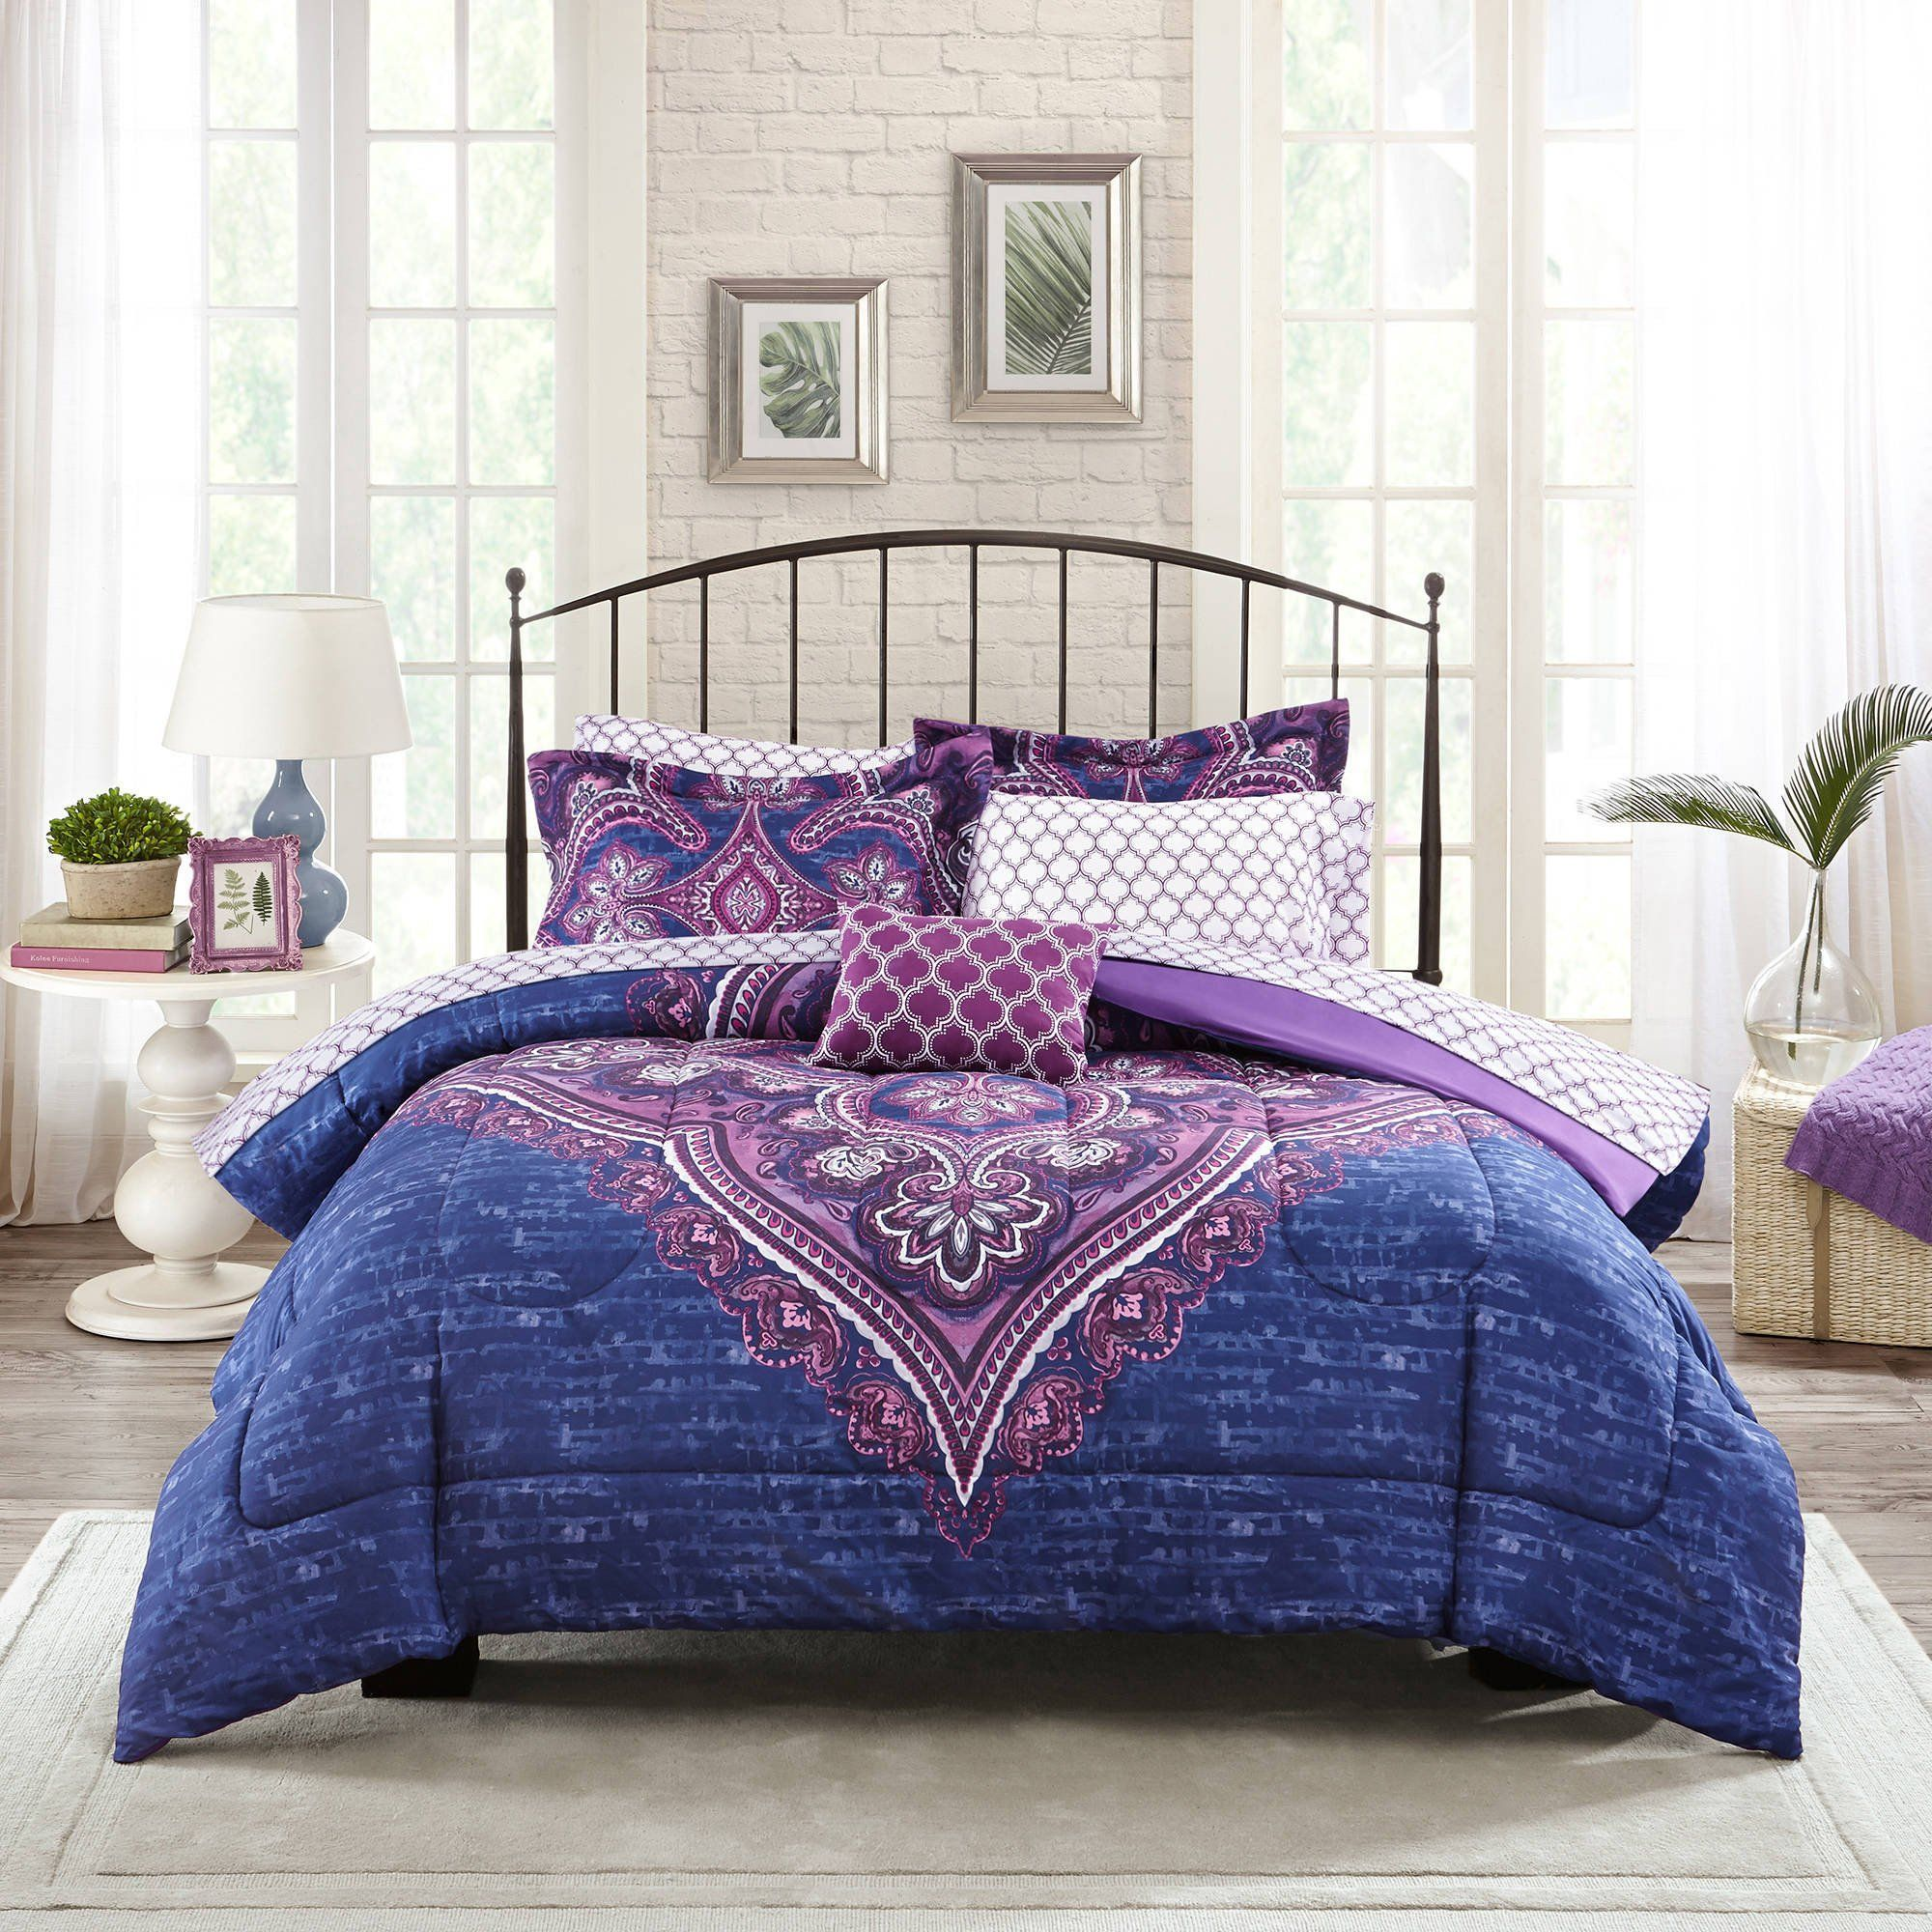 boho designs bedding sets bohemian comforter unique ikat uk hotel quilt